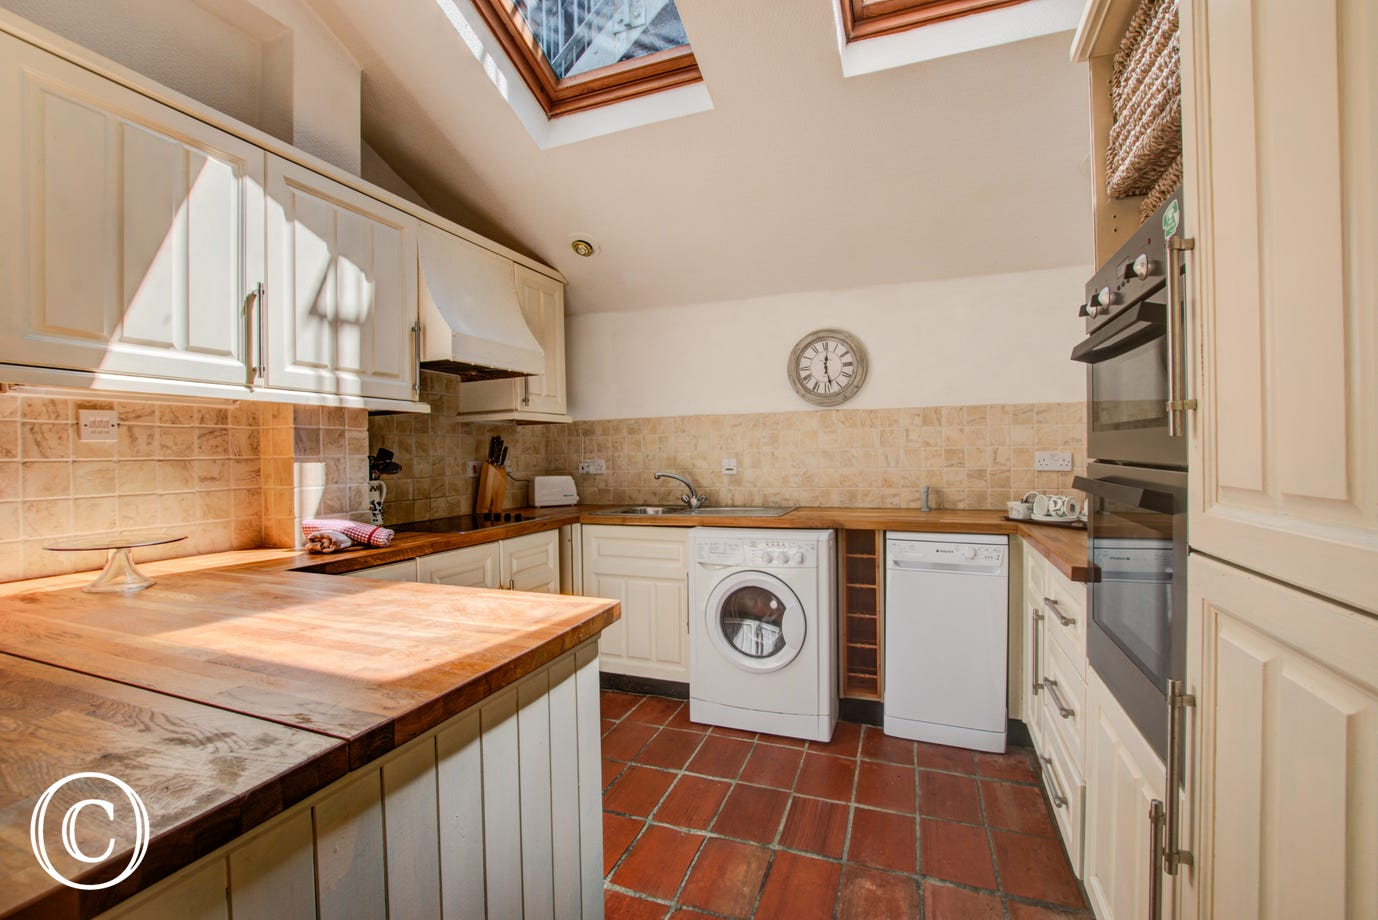 Kitchen: Modern kitchen tiled throughout with up to date appliances, electric hob, double spacious oven, washing machine, toaster, microwave and dishwasher.